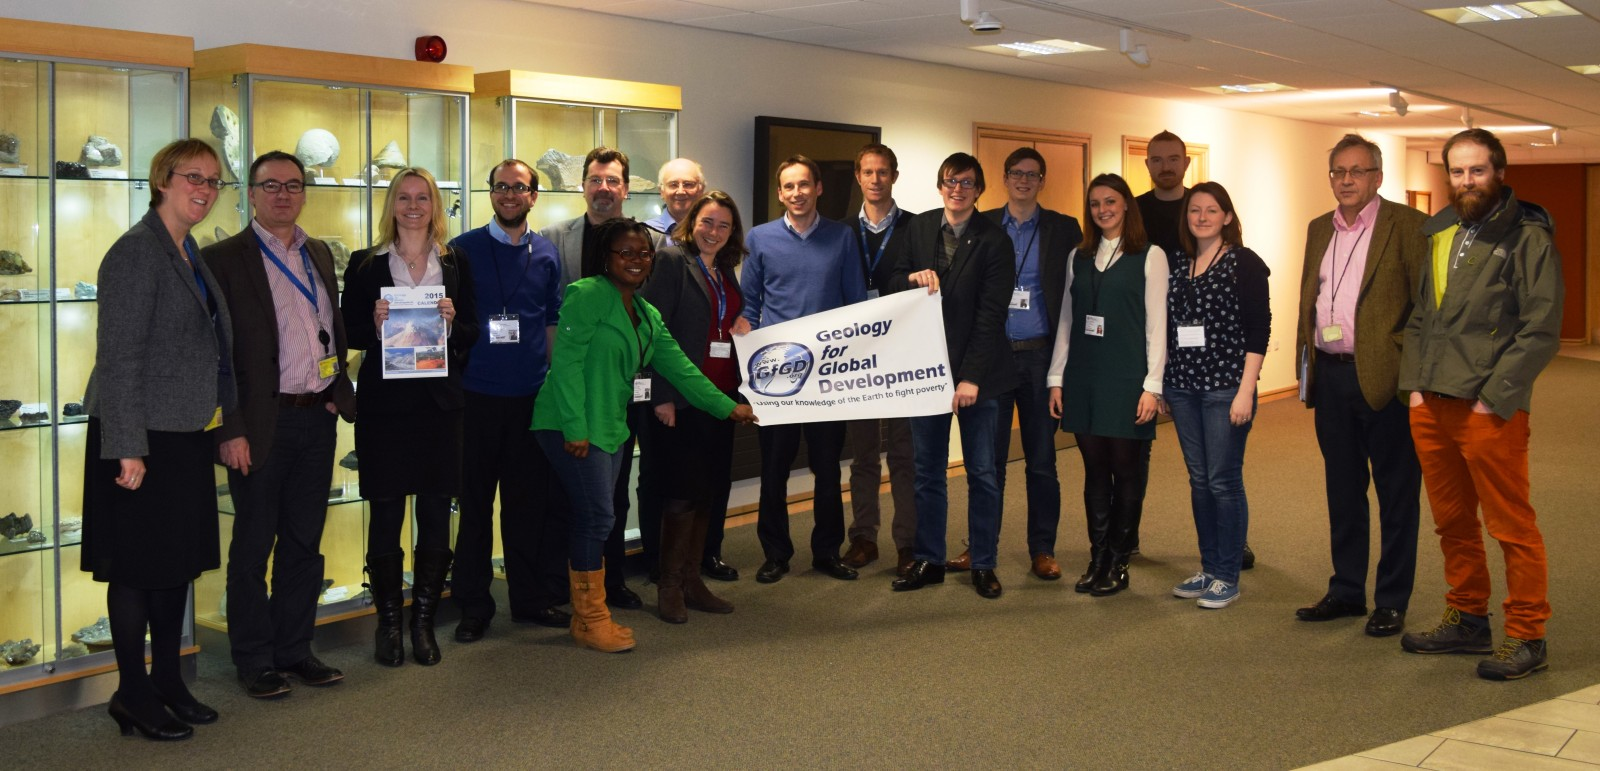 Students from around the UK visit the British Geological Survey in January 2015 for a special workshop on 'best practice when working overseas'.